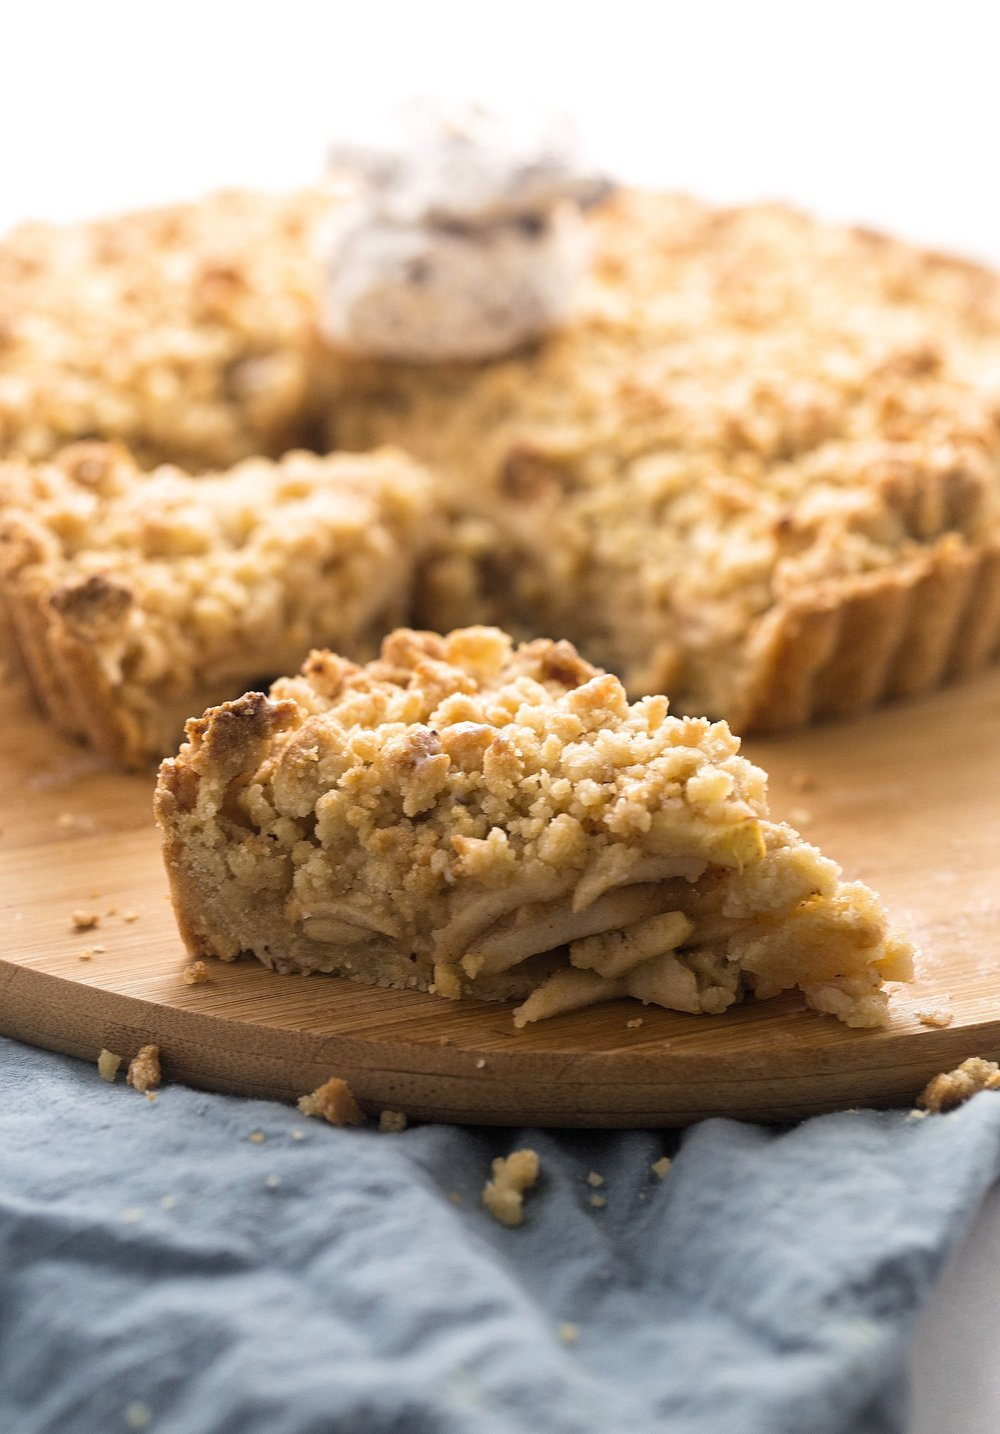 Apple Crumble Tart: fresh, cinnamony apple slices encased in a simple, delicious crust and generous crispy crumble. So easy and good! | TrufflesandTrends.com